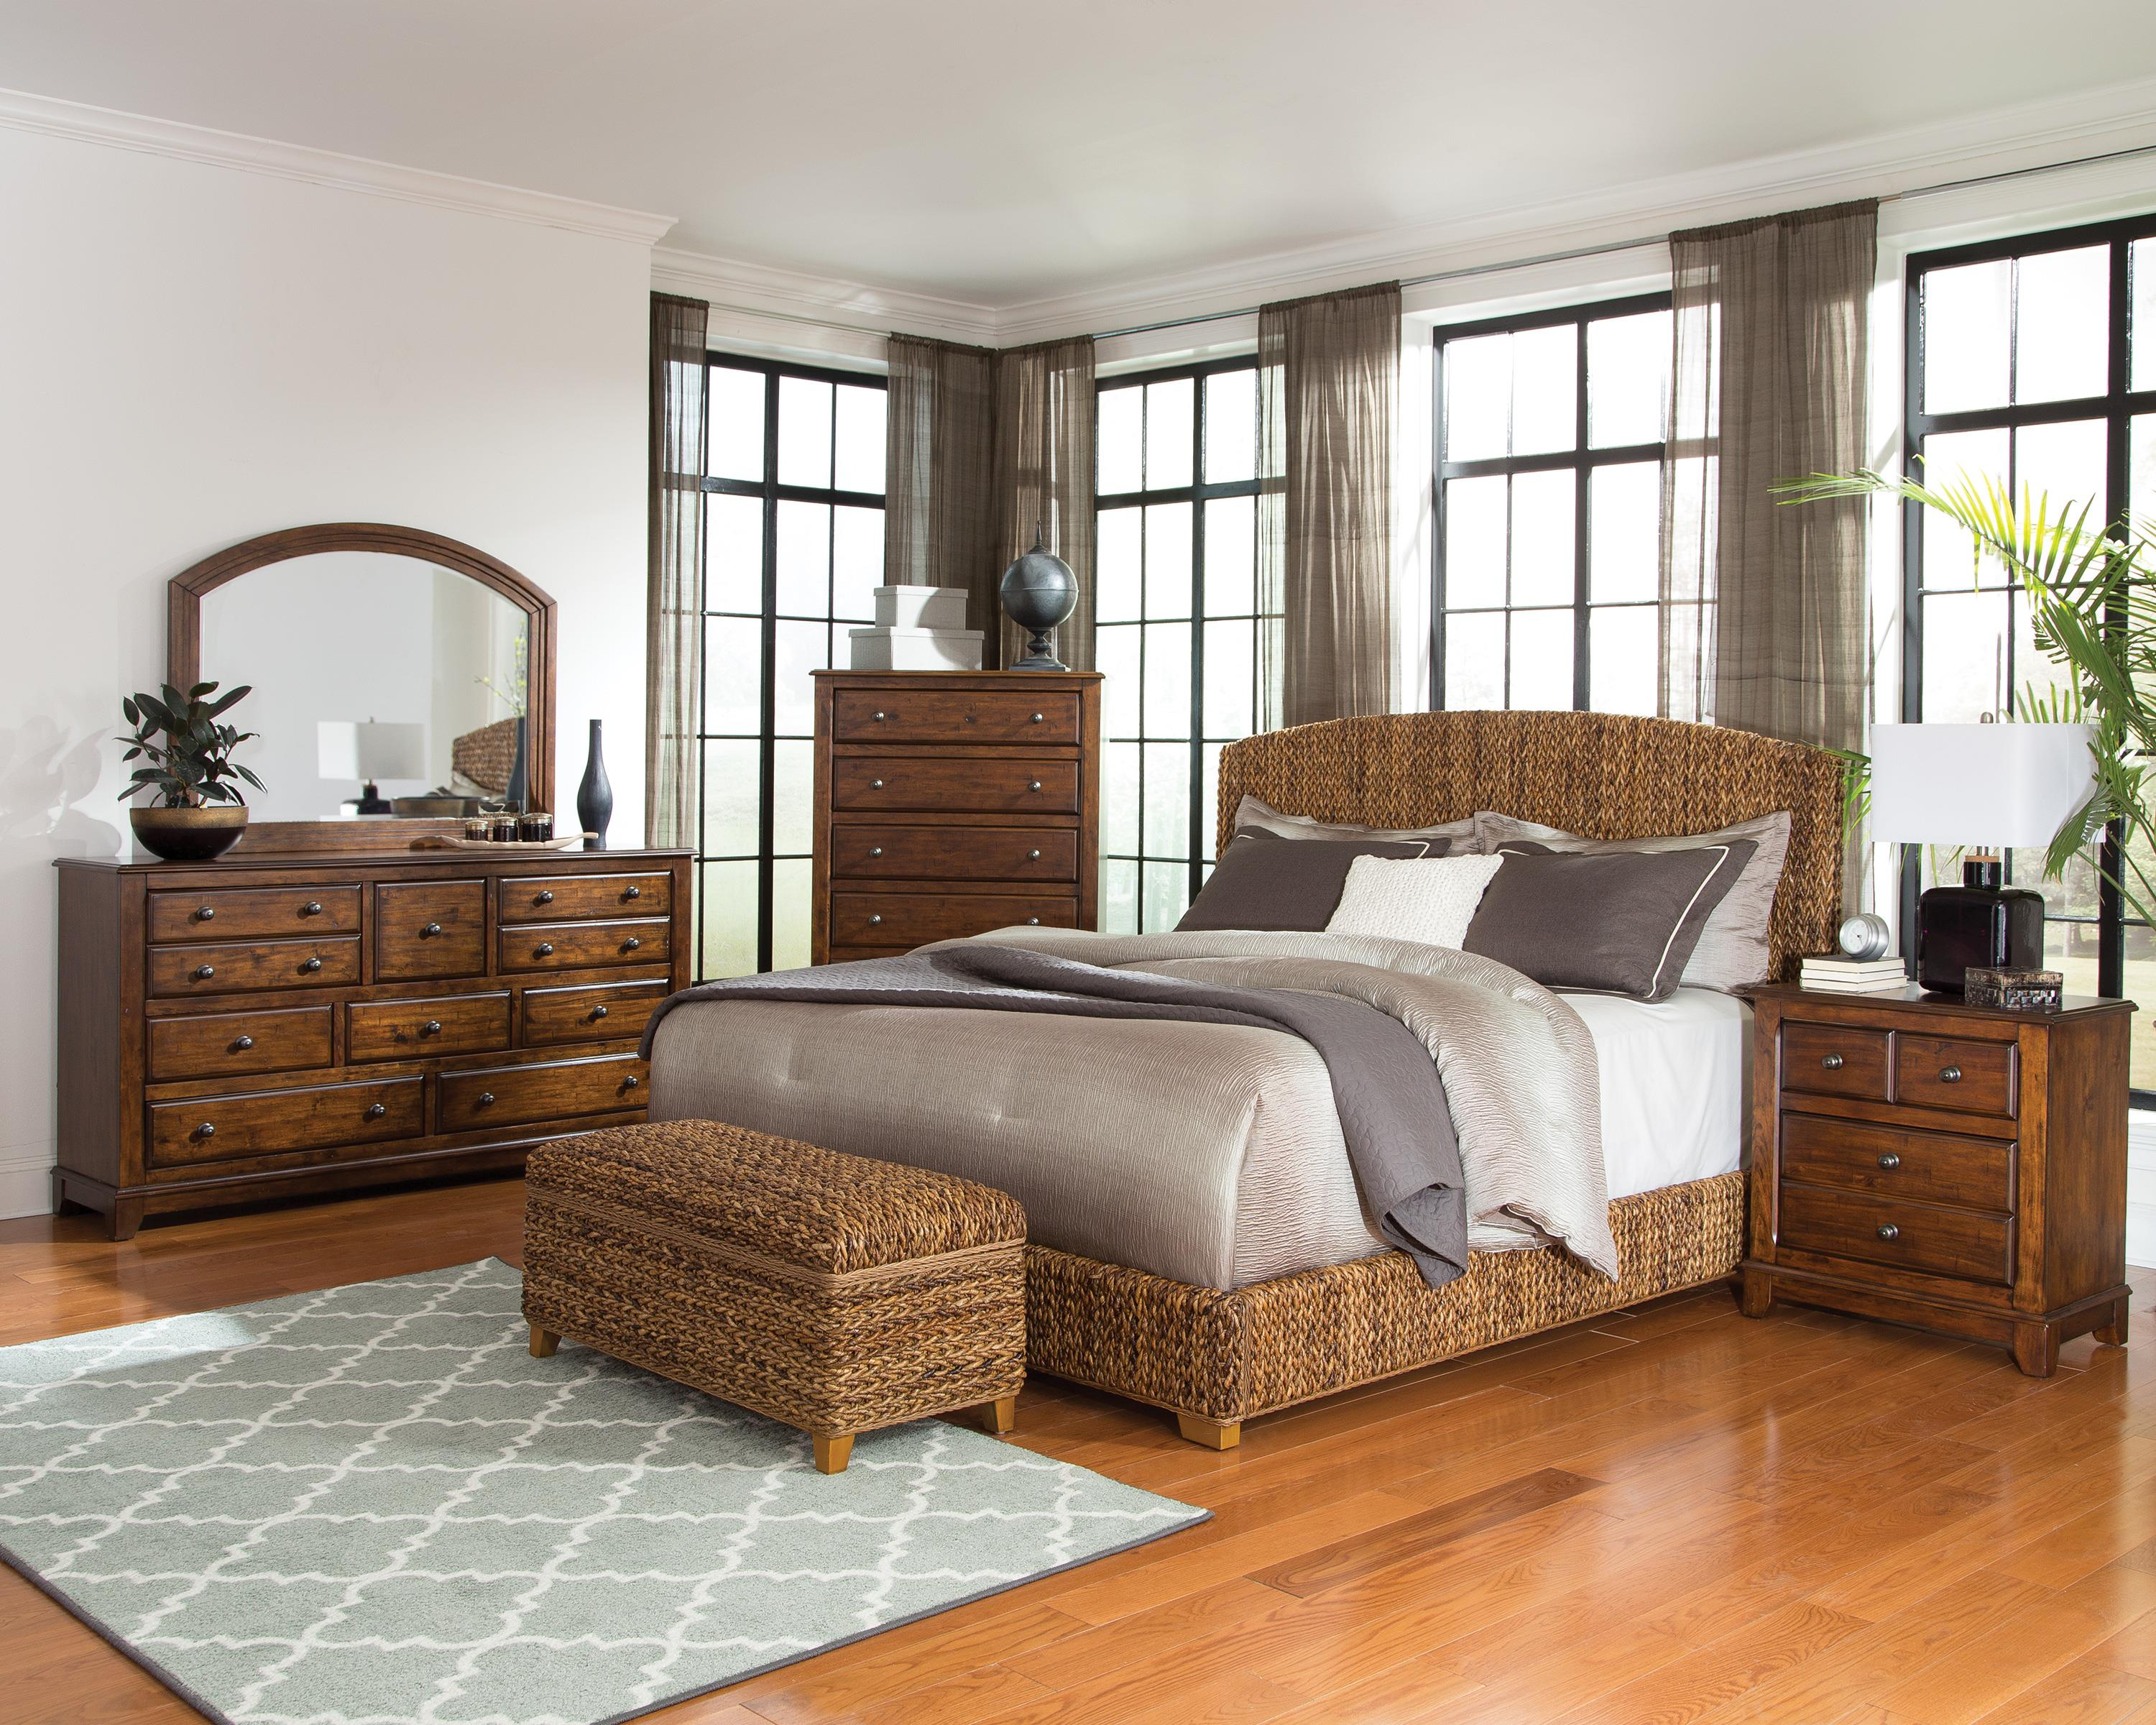 . Coaster Laughton King 5pc Natural Woven Bedroom Group